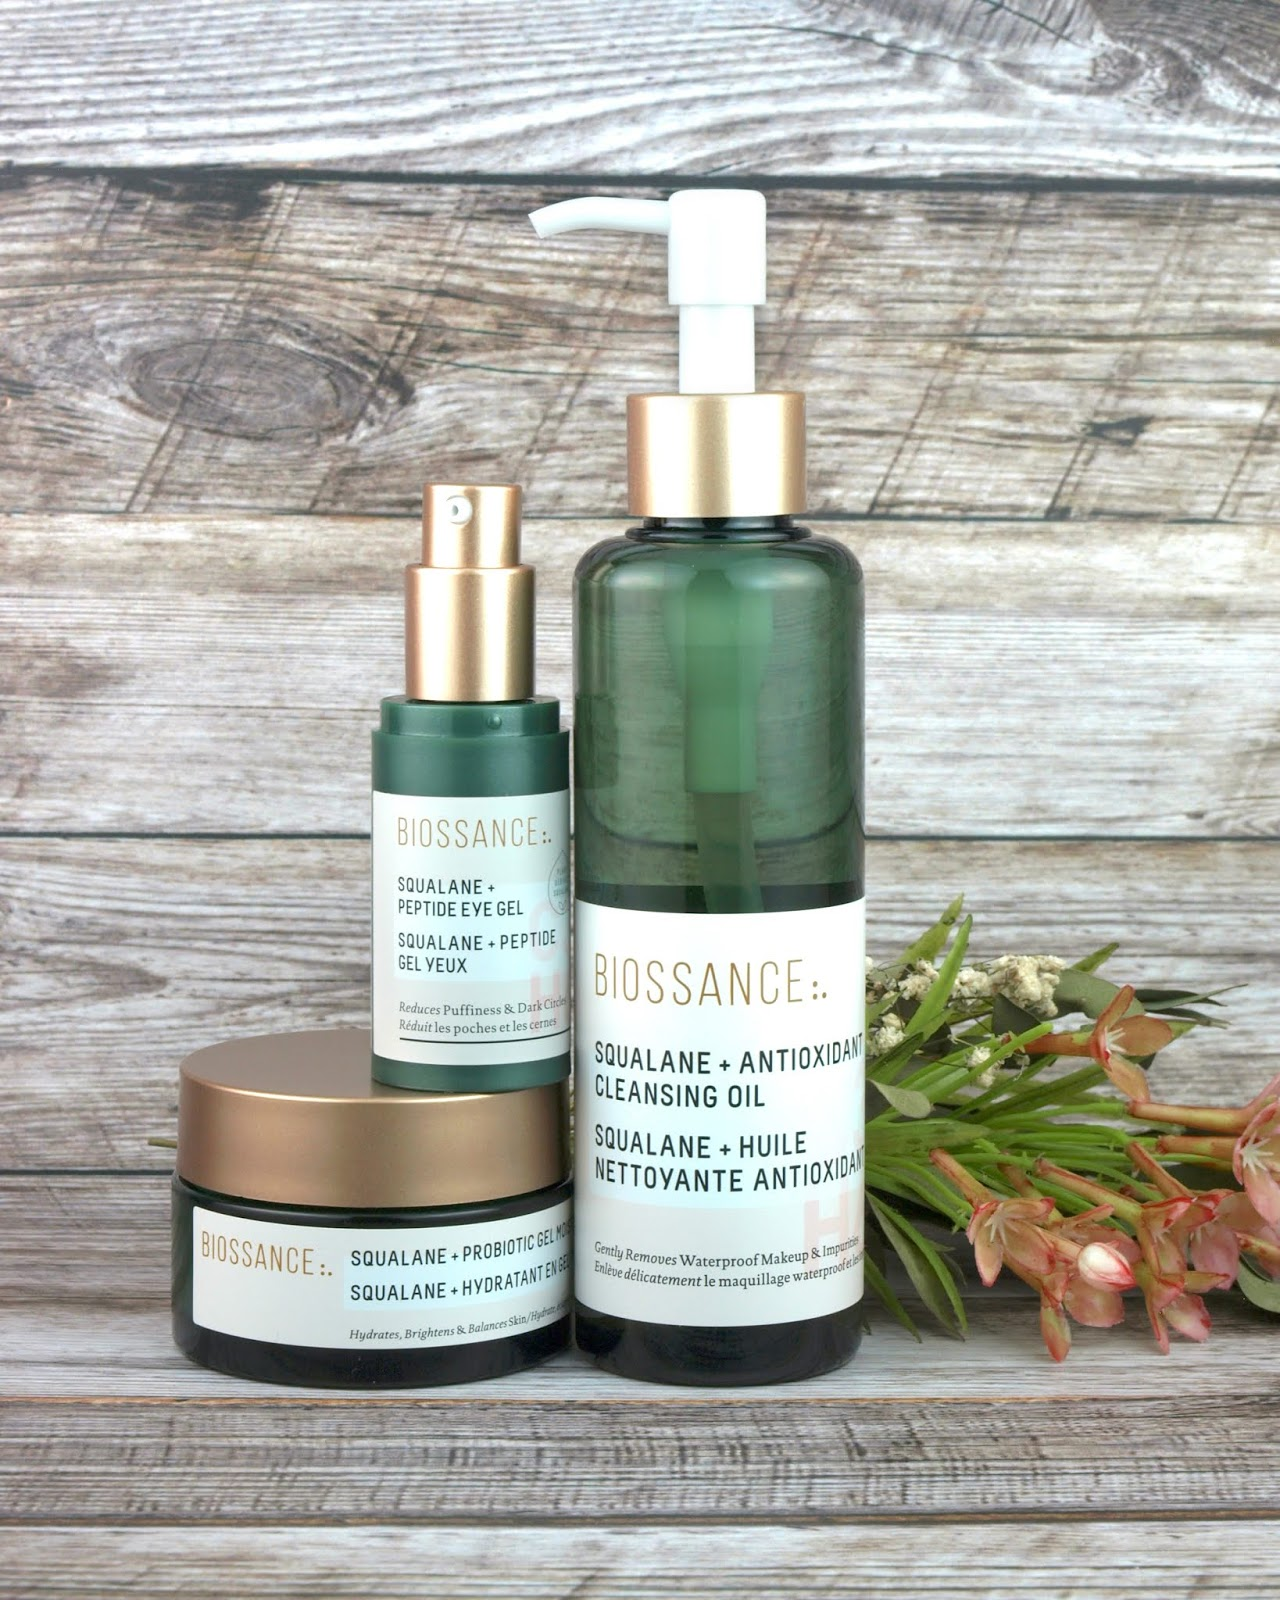 Biossance | Squalane + Antioxidant Cleansing Oil, Squalane + Probiotic Gel Moisturizer & Squalane + Peptide Eye Gel: Review